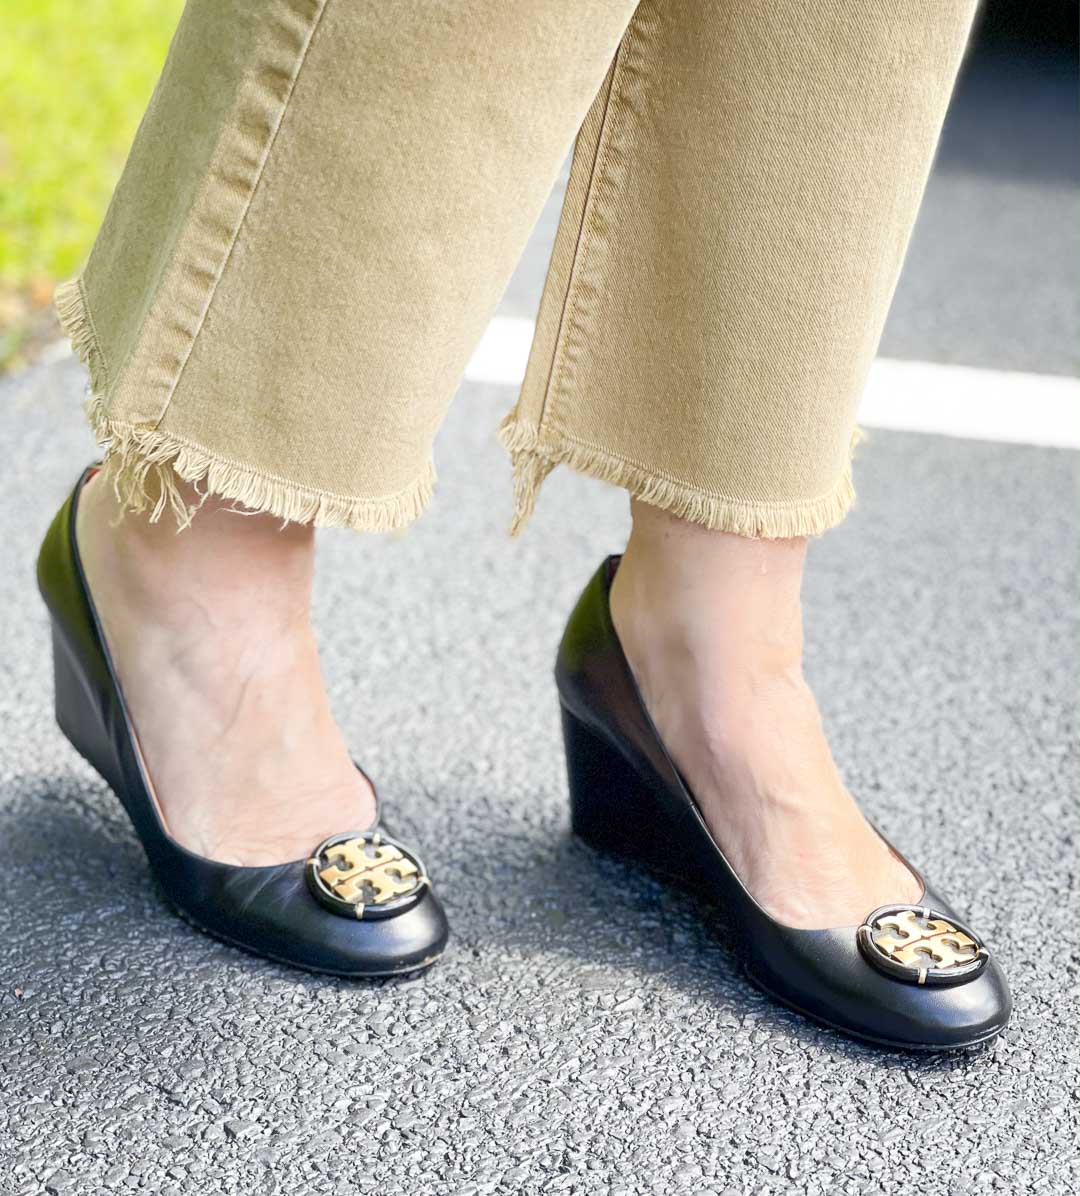 Over 40 Fashion Blogger, Tania Stephens is wearing raw hem jeans with Tory Burch wedge heels